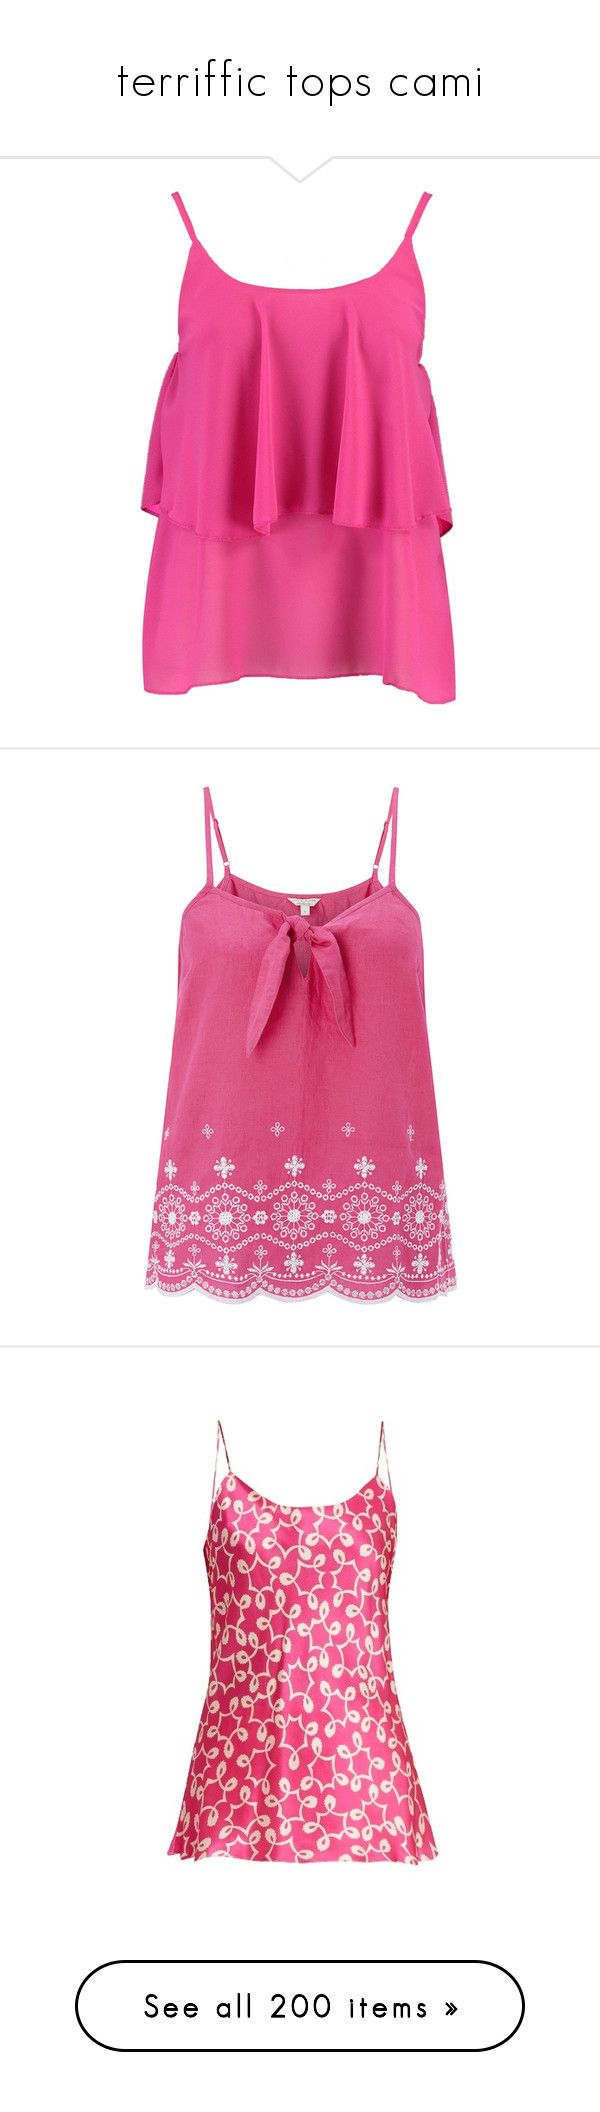 """""""terriffic tops cami"""" by countrycousin ❤ liked on Polyvore featuring intimates, camis, polka dot camisole, polka dot cami, cropped camis, polka dot jersey, cropped camisole, tops, shirts and camisole"""